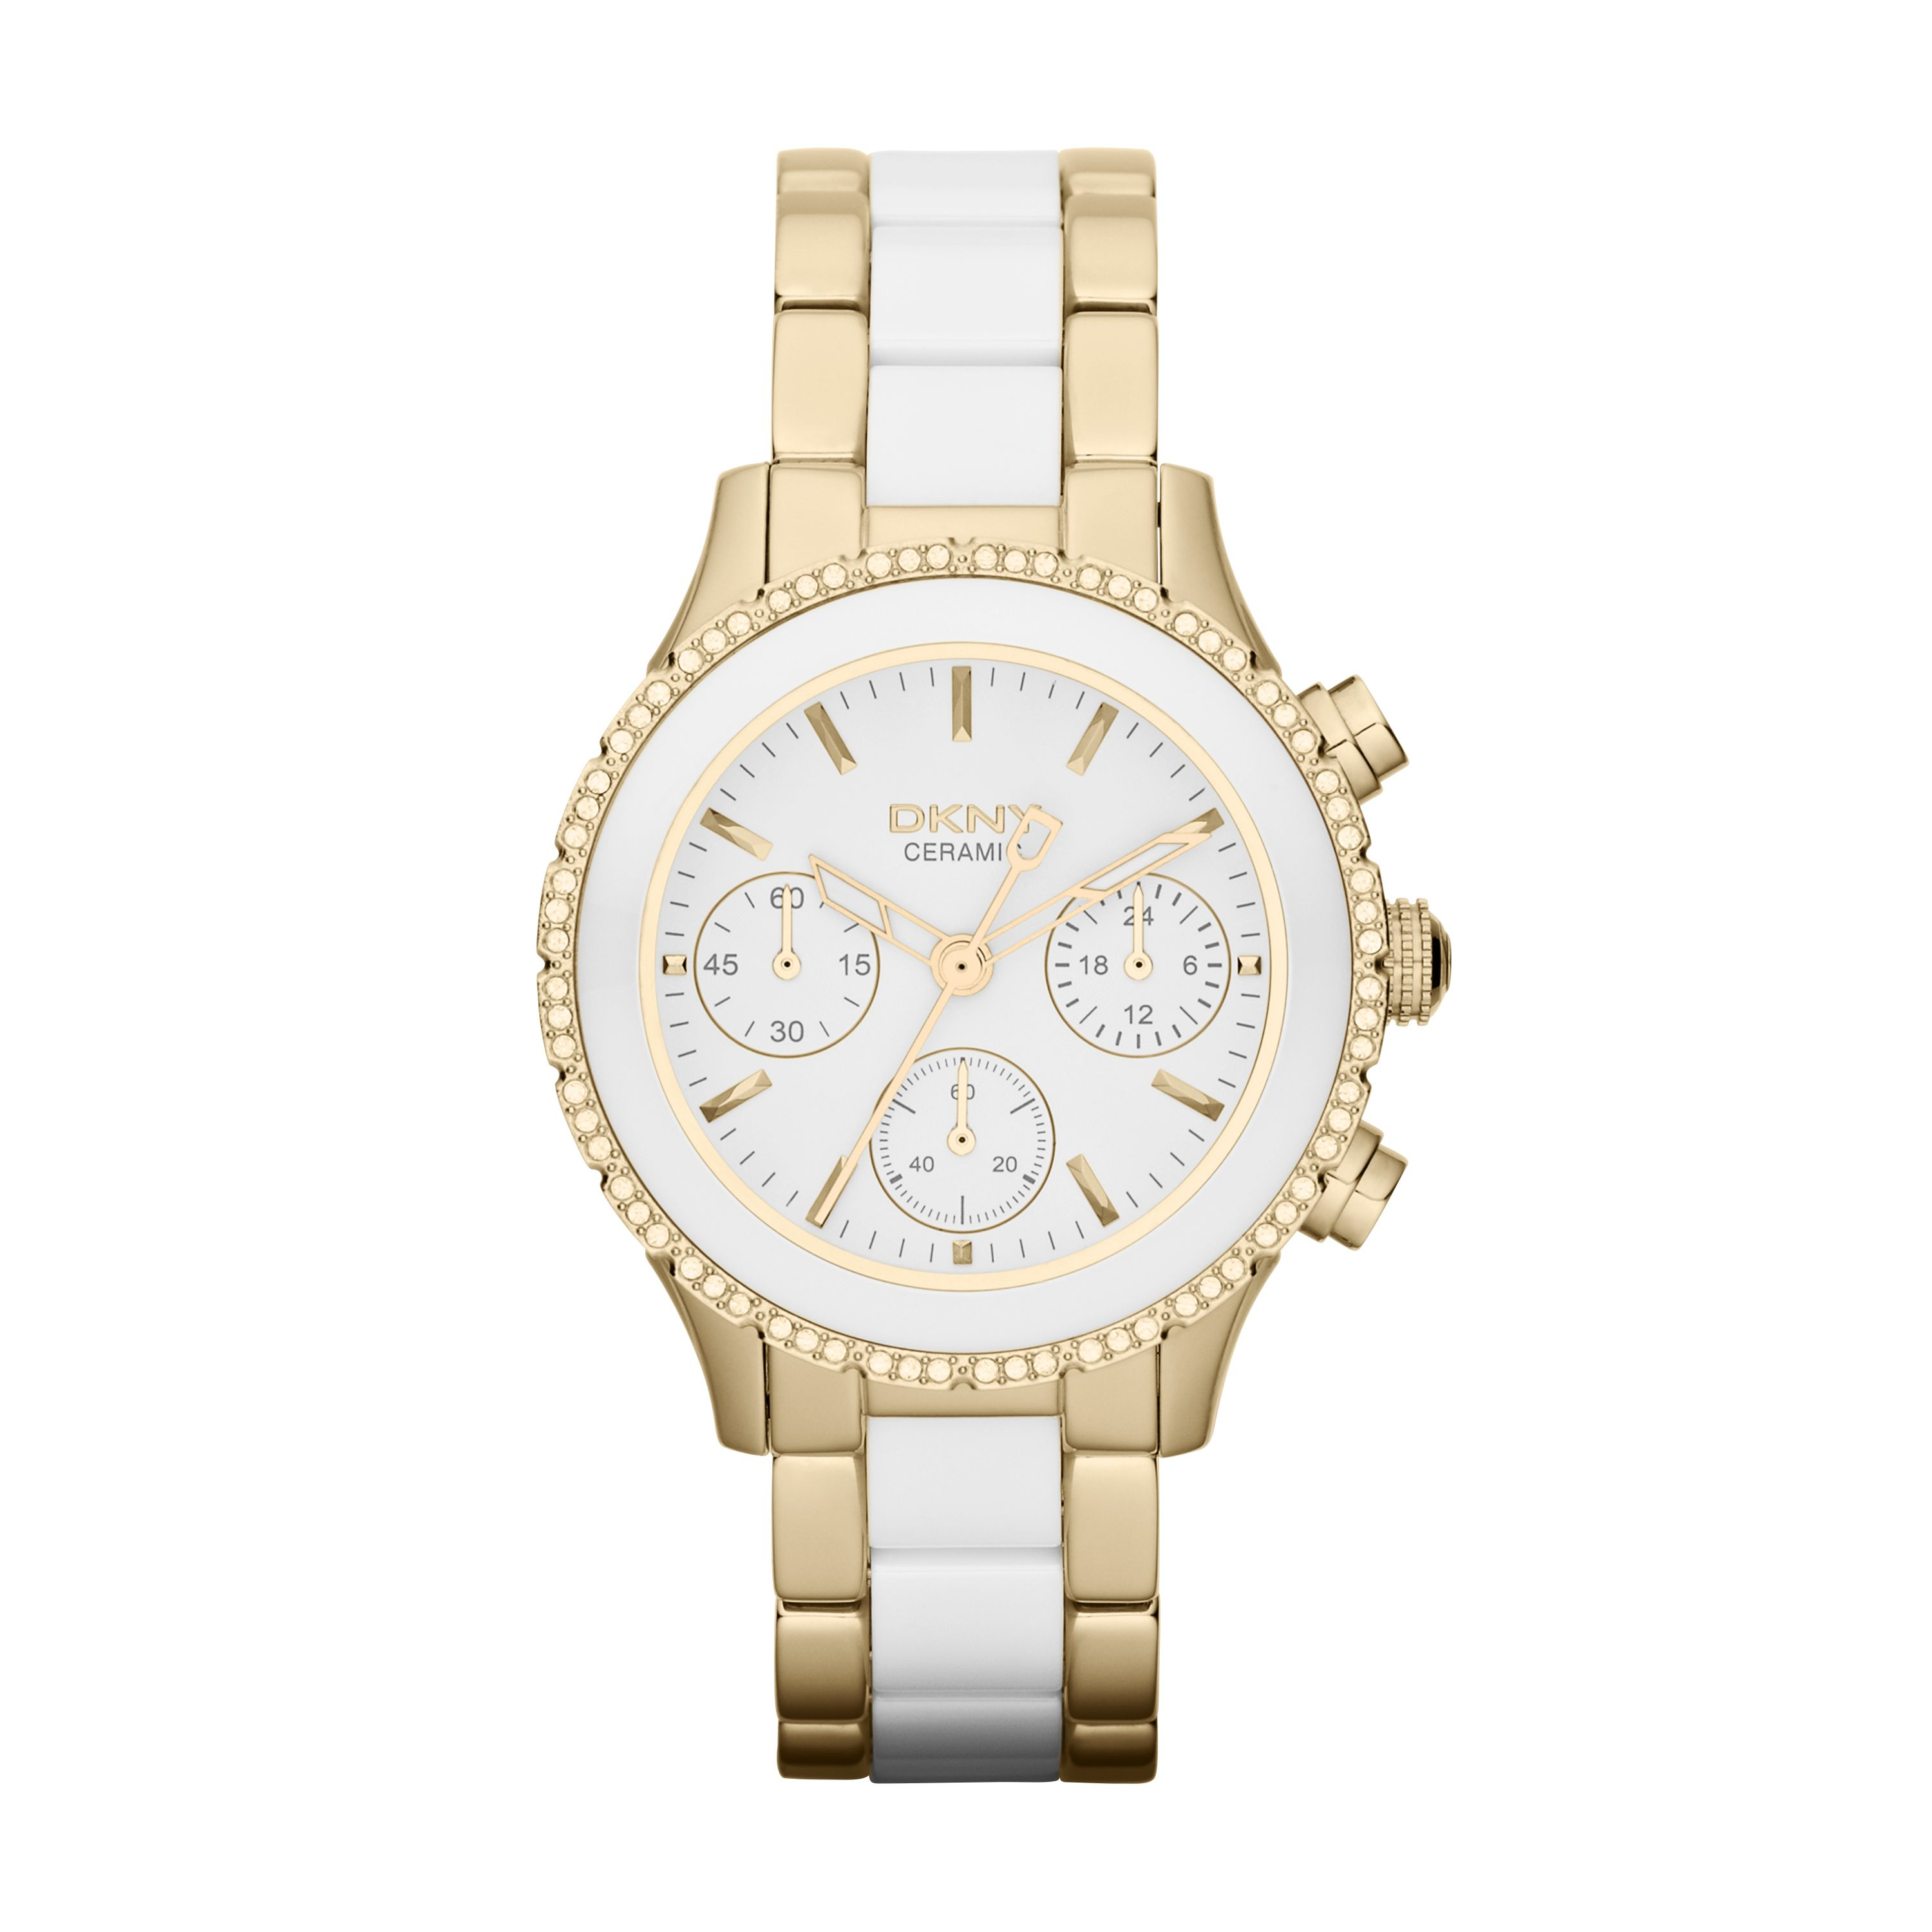 NY8830 Chic ladies chronograph ceramic watch